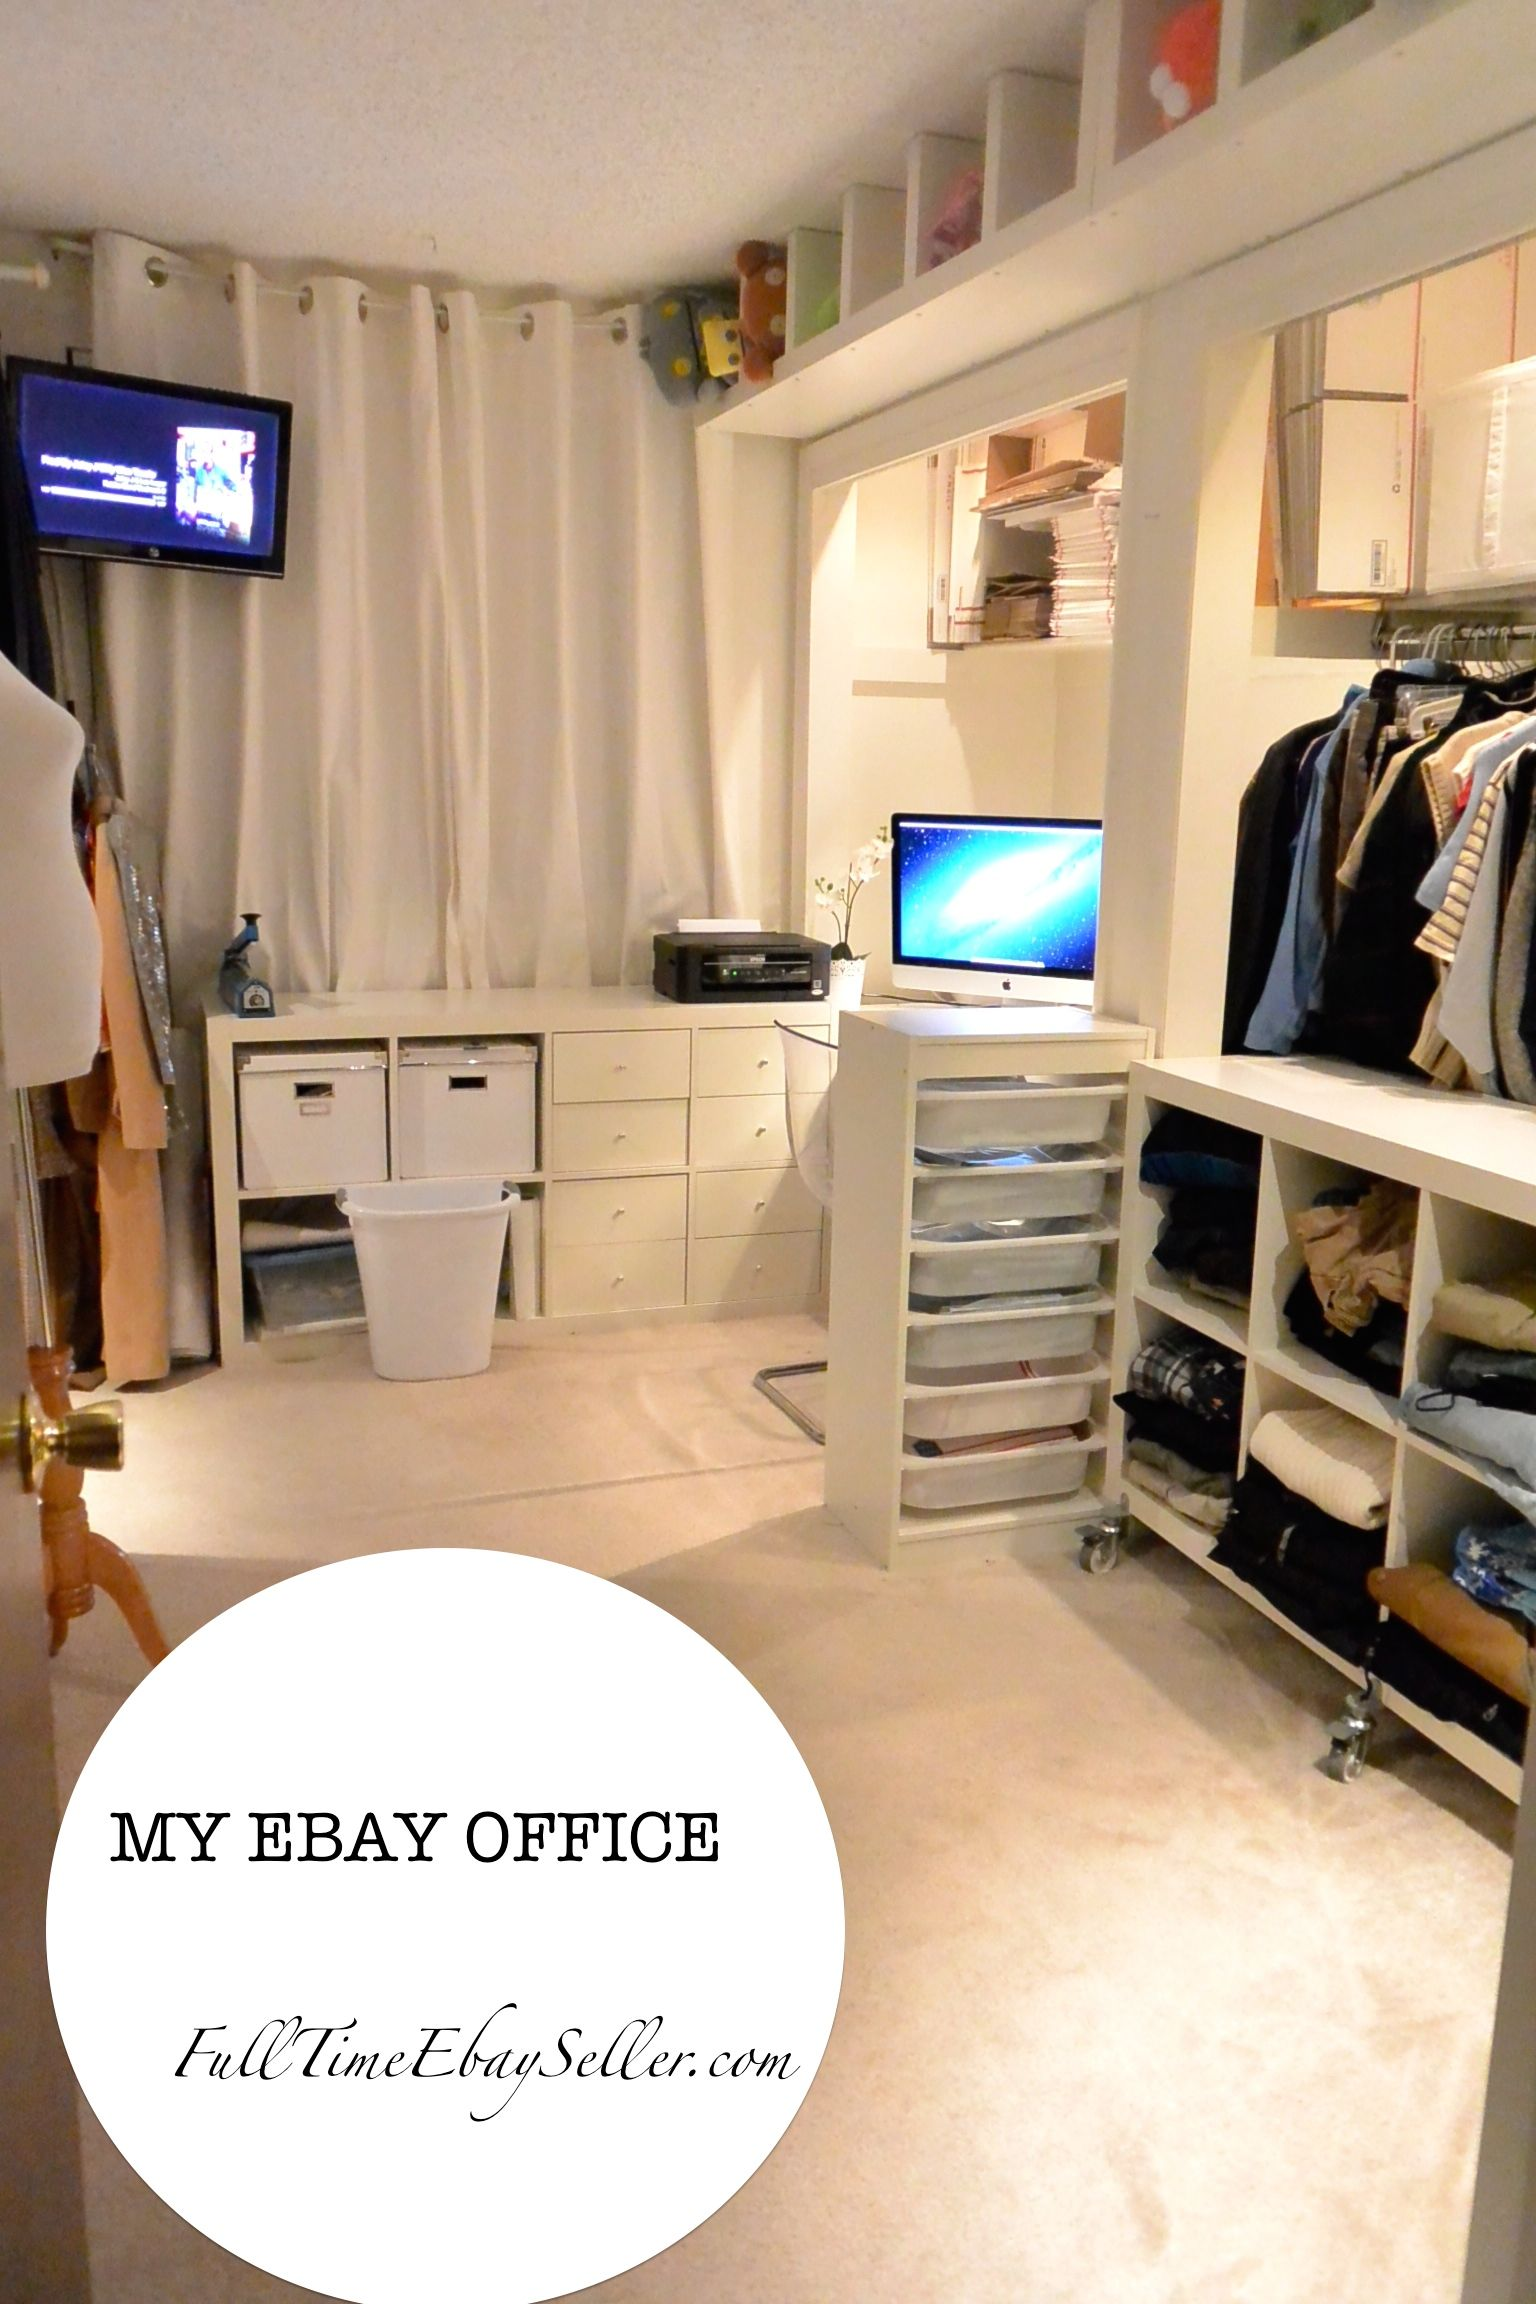 storage ideas for home office. Http://fulltimeebayseller.com/my-ebay-room/ My Ebay Home Office Room. Storage Ideas. Blog About Selling On Ebay. She Posts Her Numbers And What Sells! Ideas For